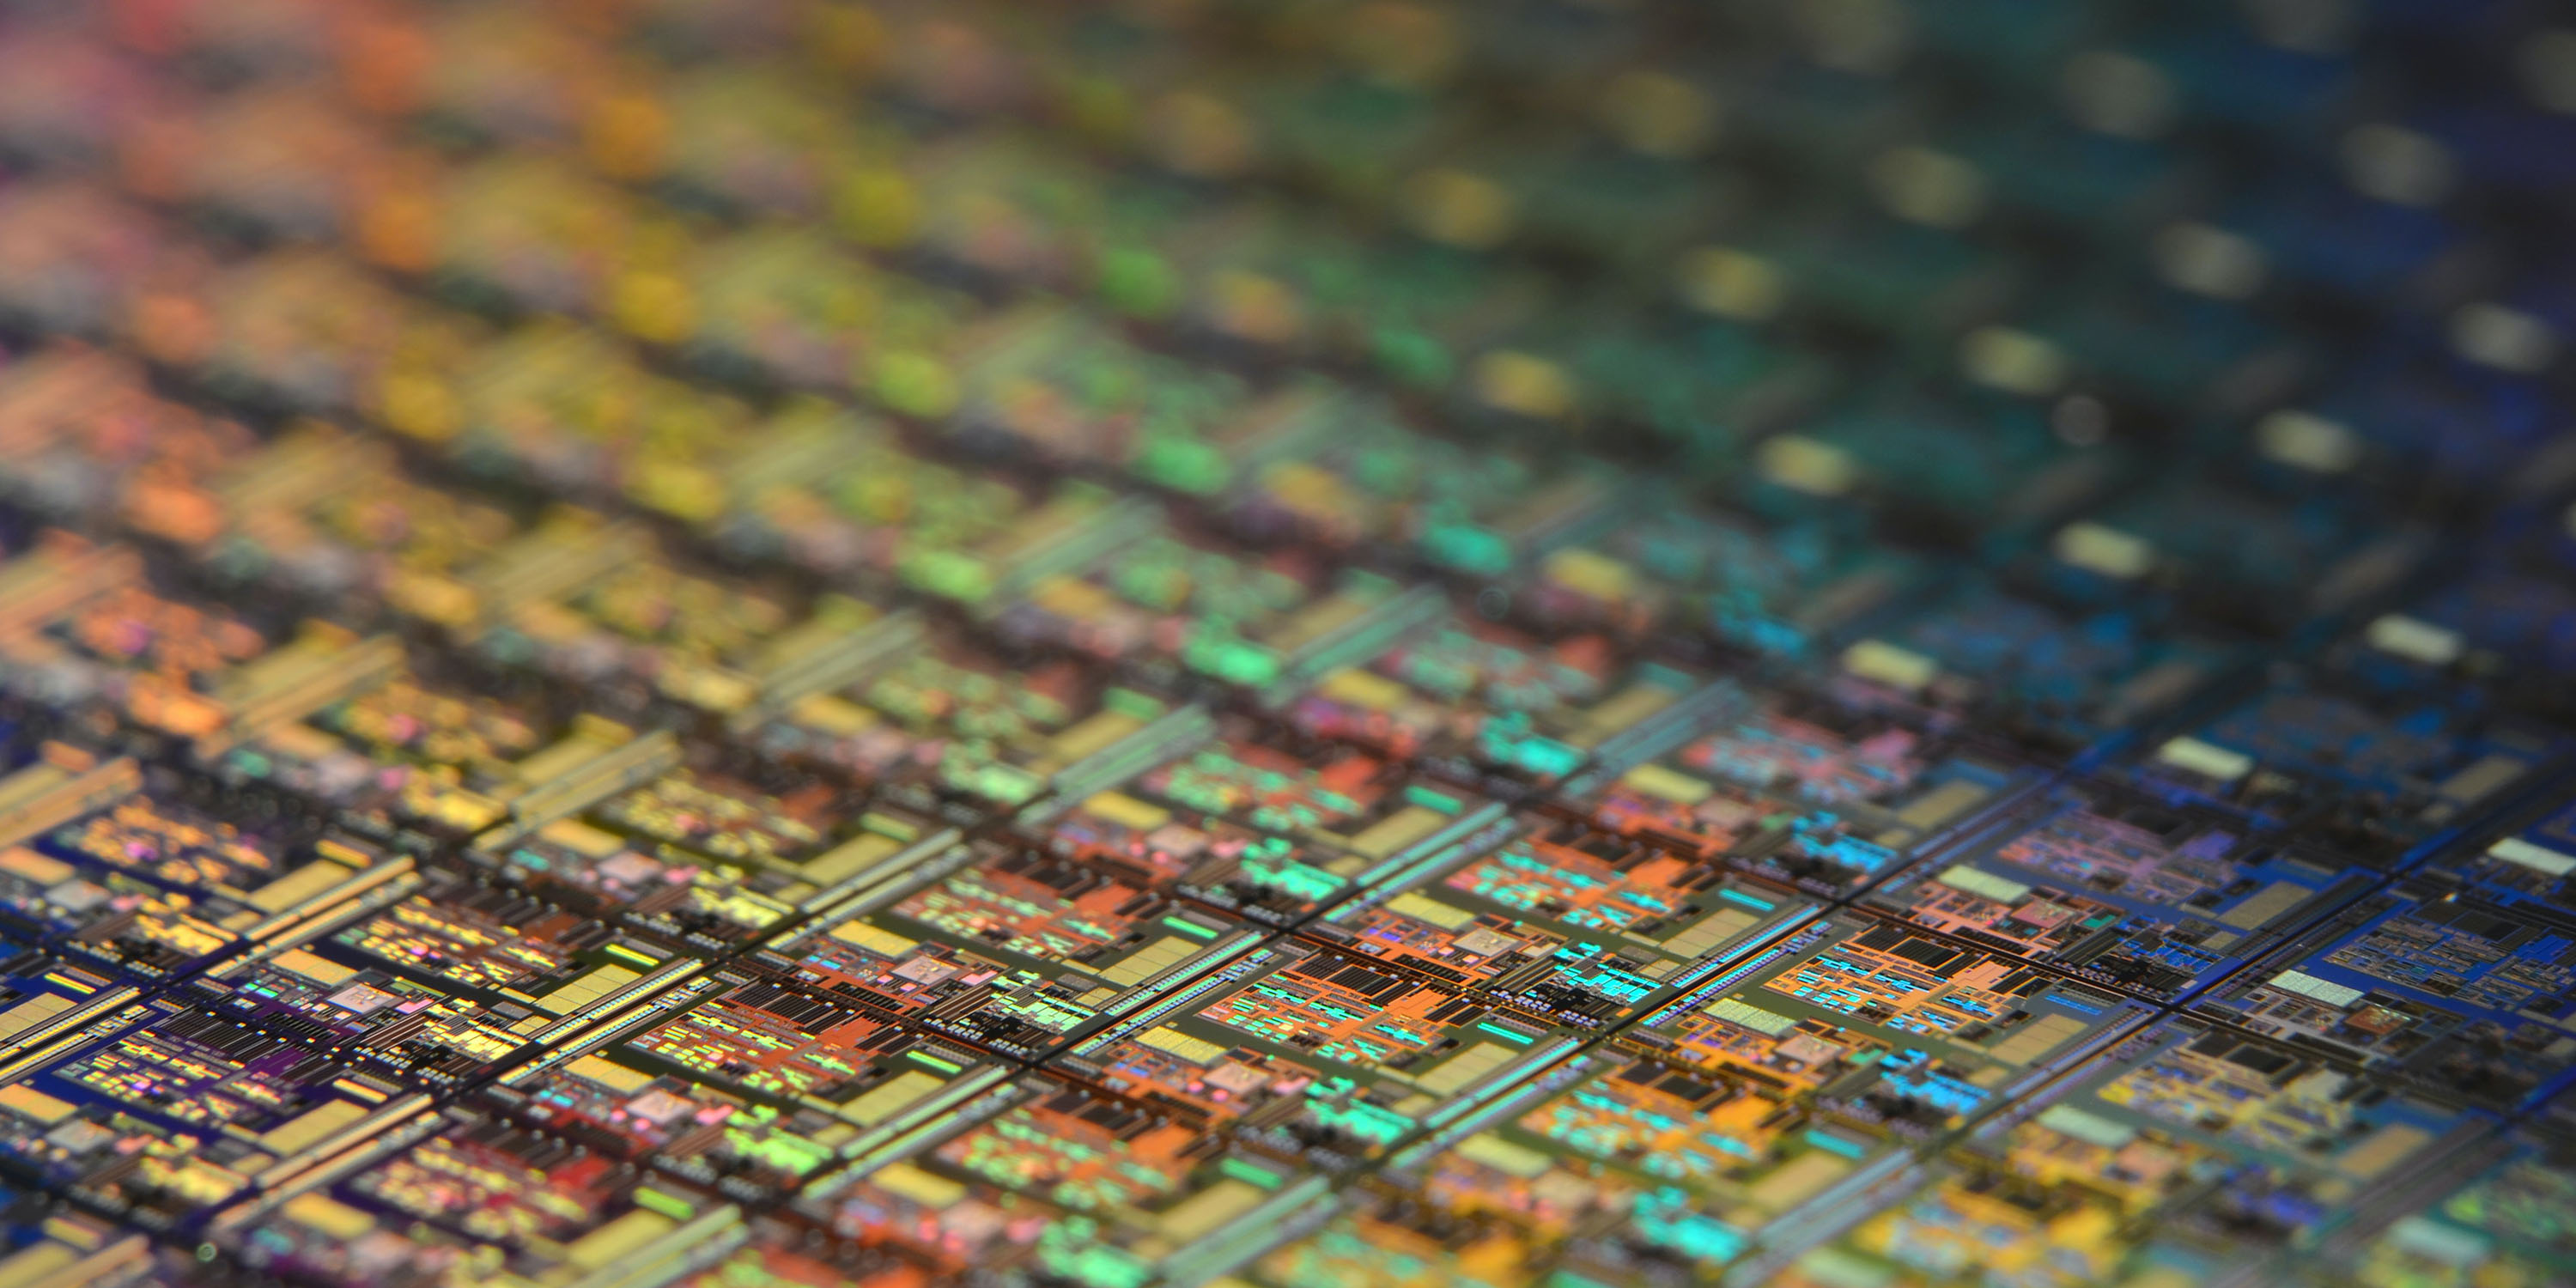 Nikkei: Next year's iPad Pro to adopt cutting-edge 3nm TSMC process for  chip, iPhone 14 to use 4nm chip - 9to5Mac